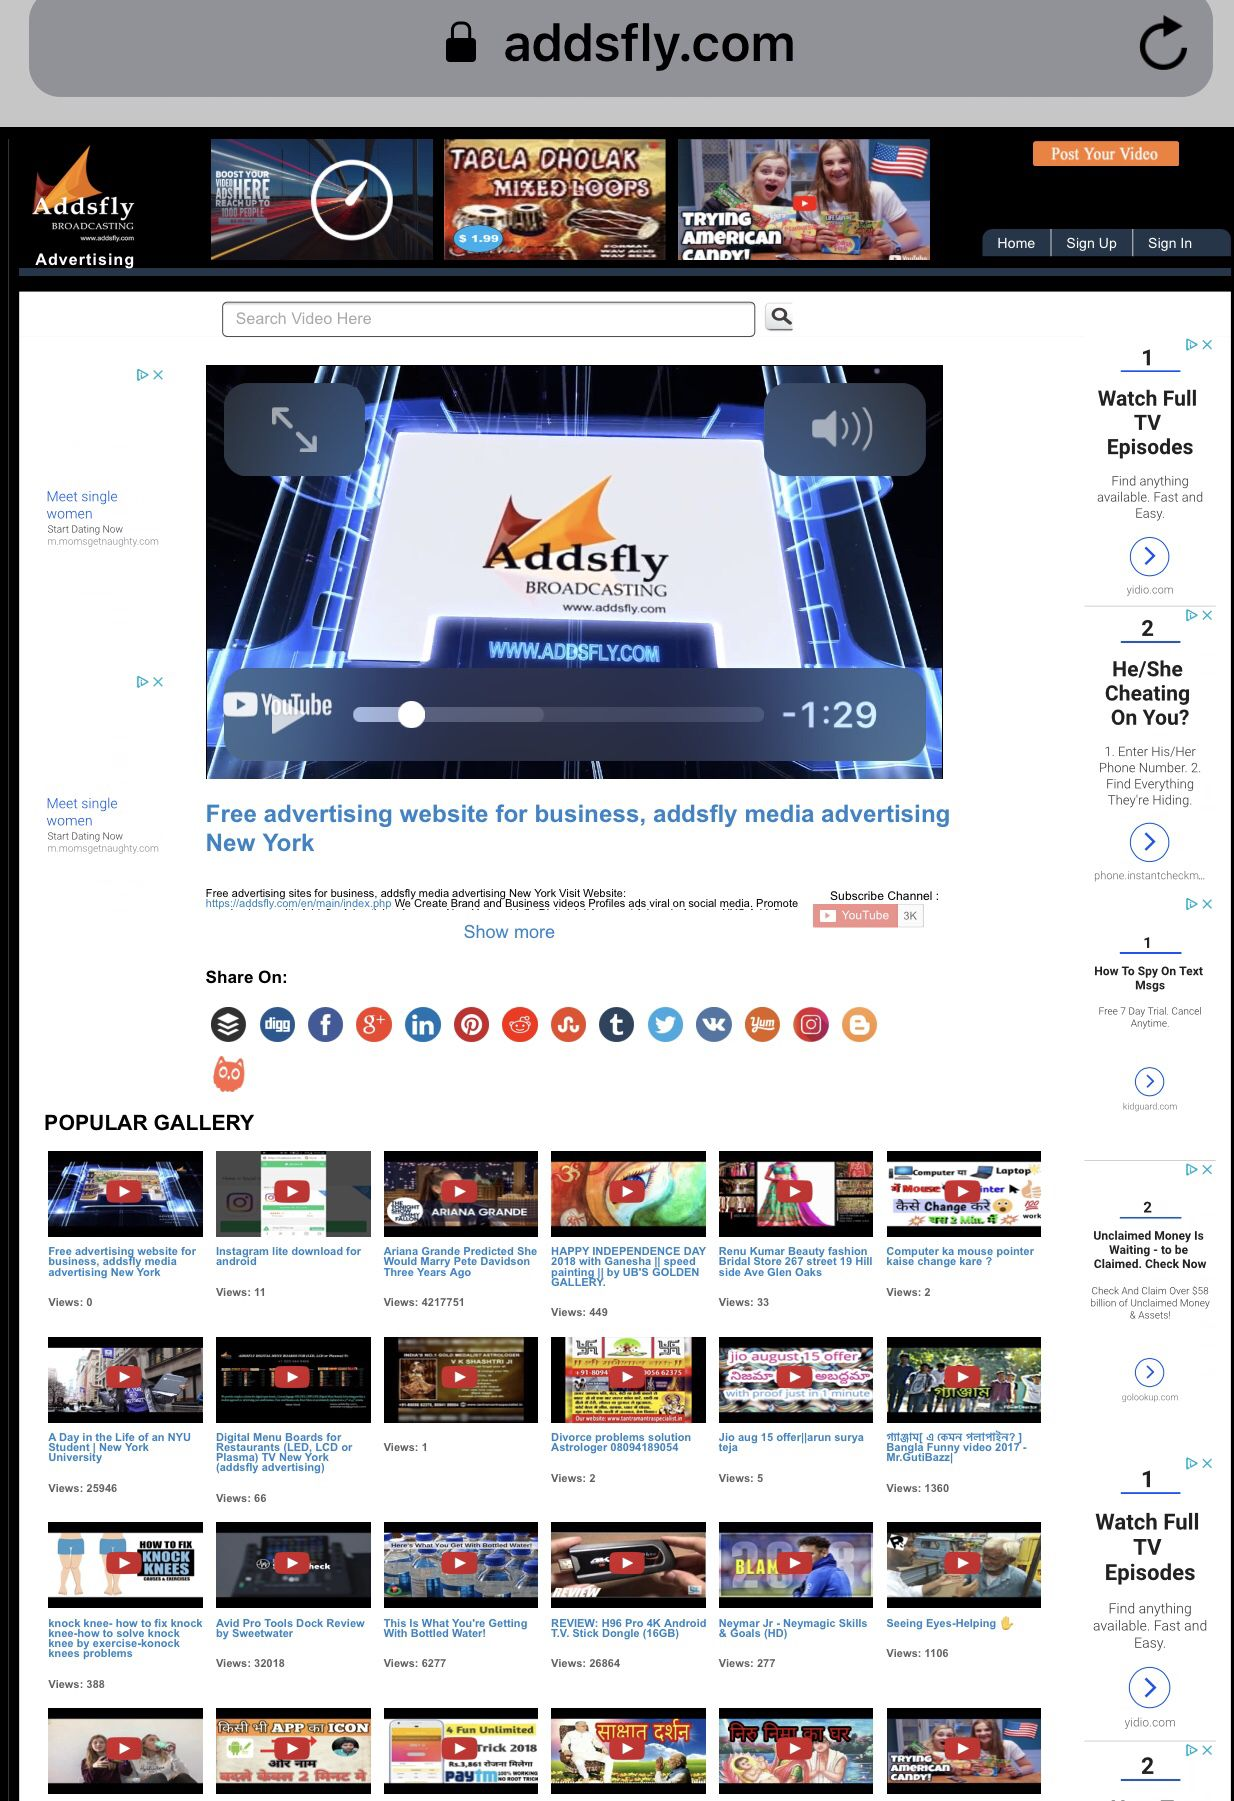 Free Advertising Website For Business Addsfly Media Advertising New York Addsfly Google Search Ht Corporate Videos Free Advertising Social Media Advertising